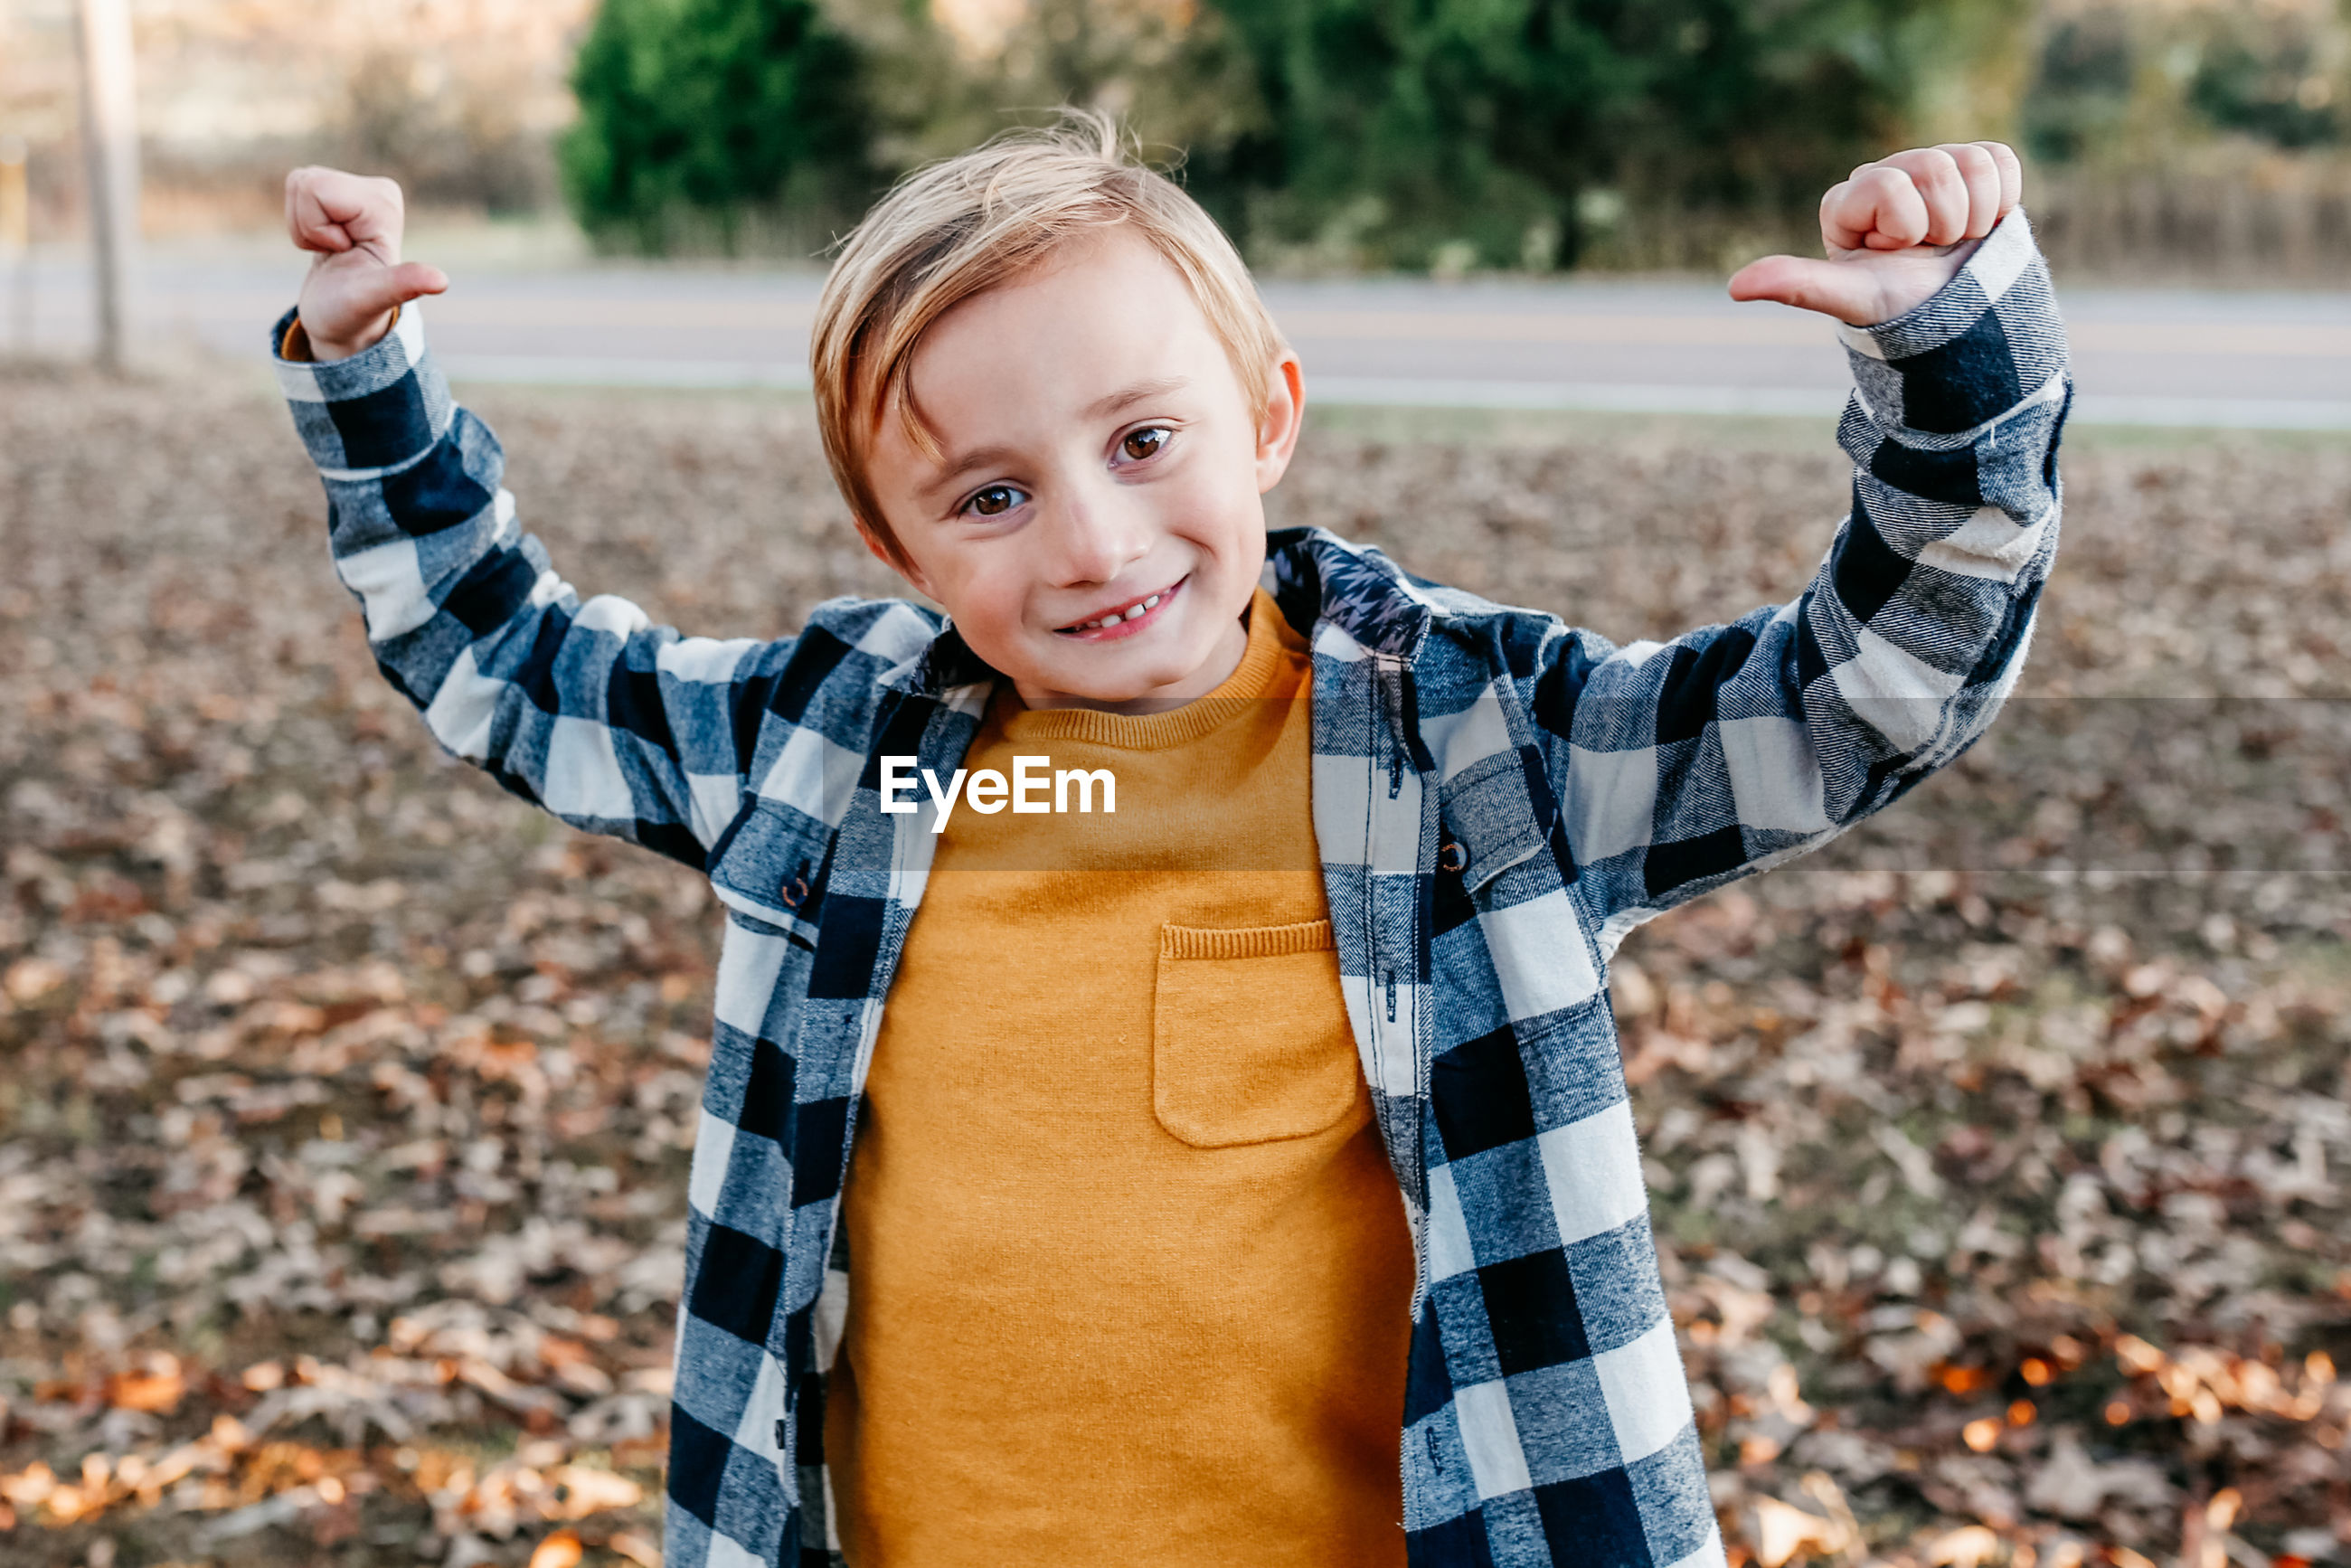 Portrait of smiling boy gesturing while standing on land